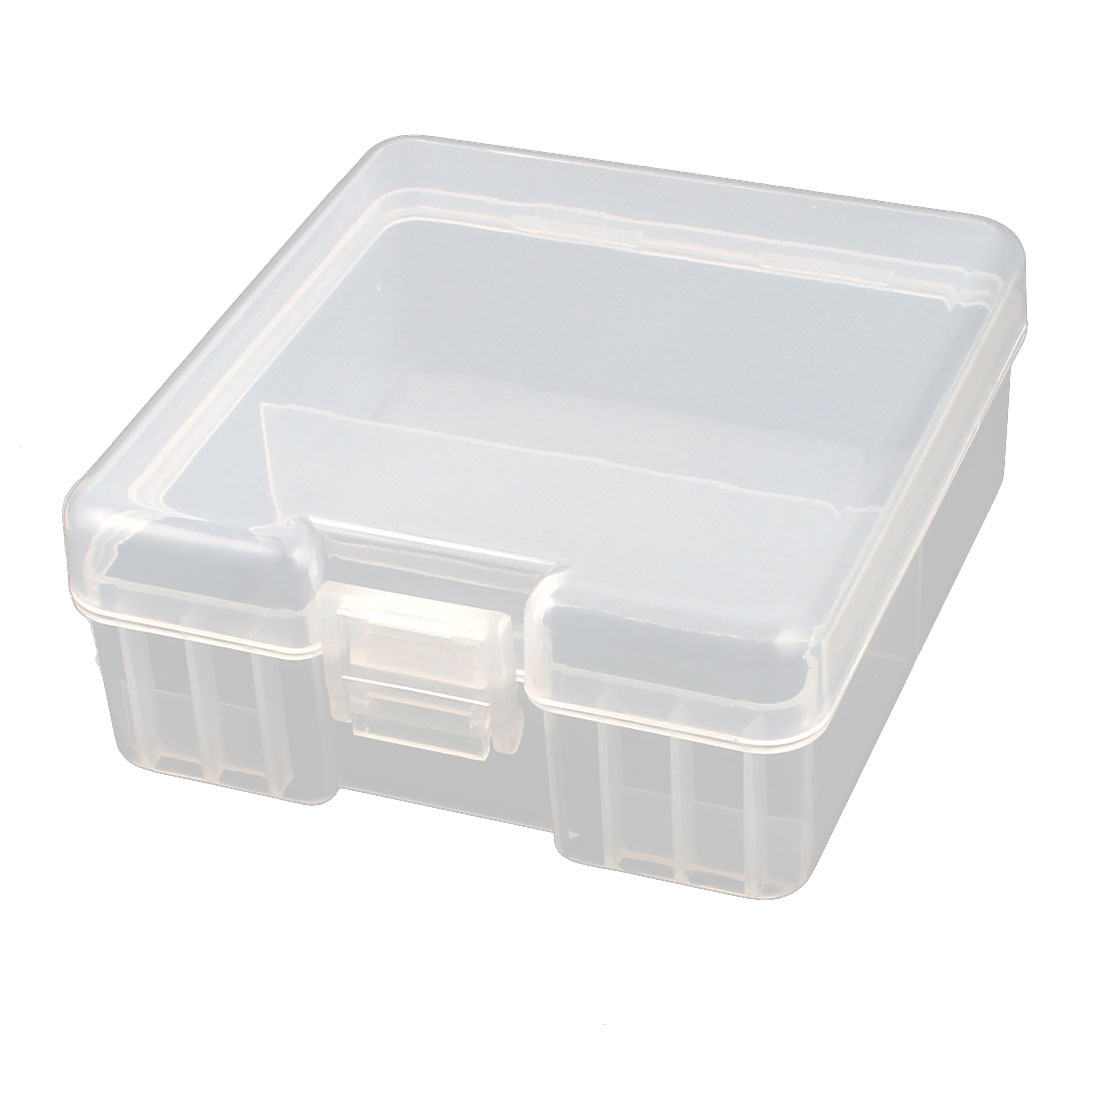 Hard Plastic Case Holder Storage Box Container for 100 x AAA Battery